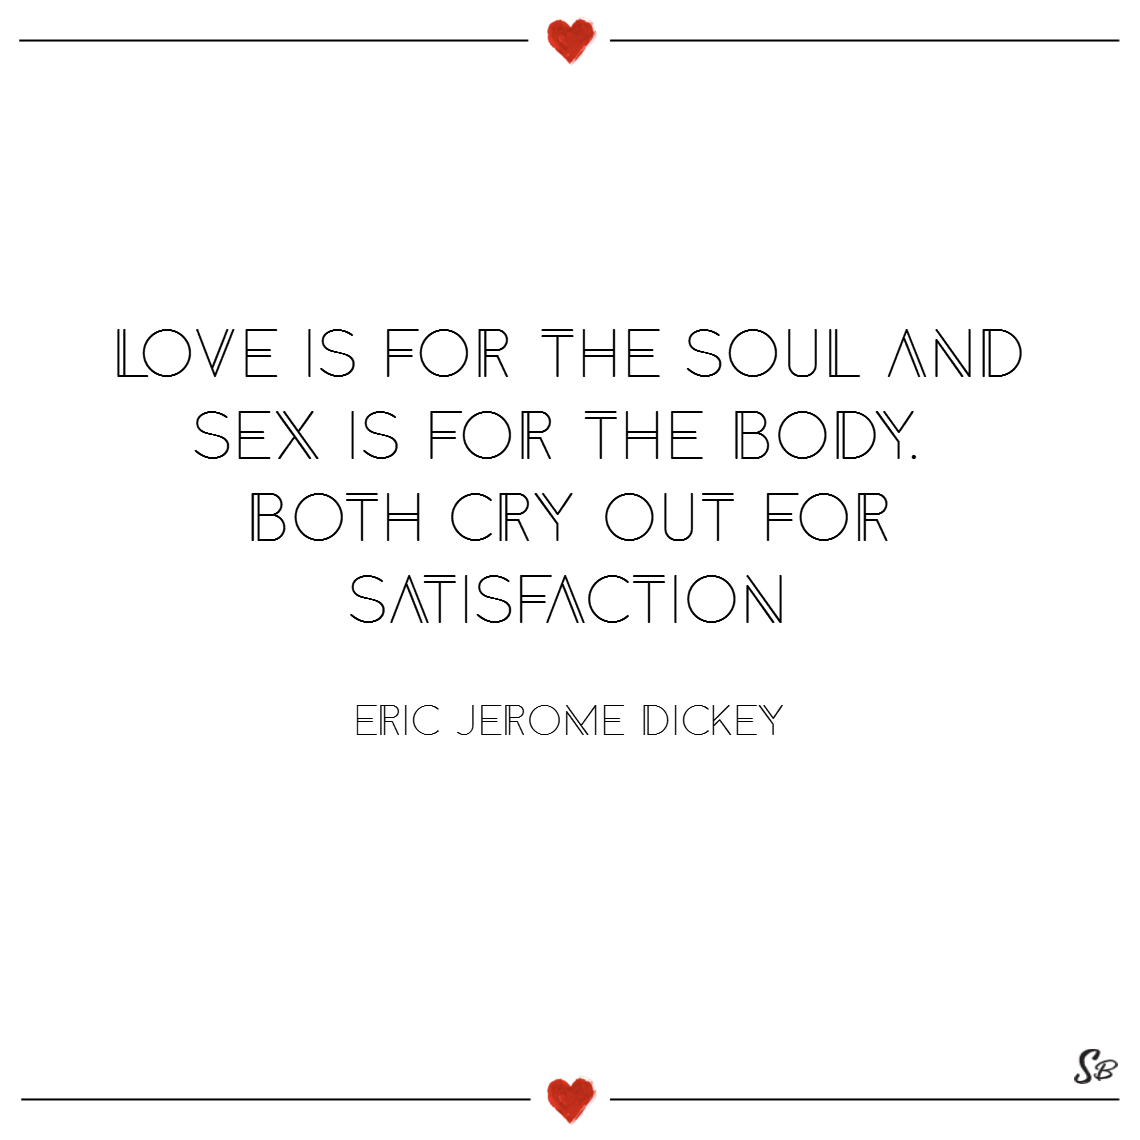 Love is for the soul and sex is for the body. both cry out for satisfaction. – eric jerome dickey